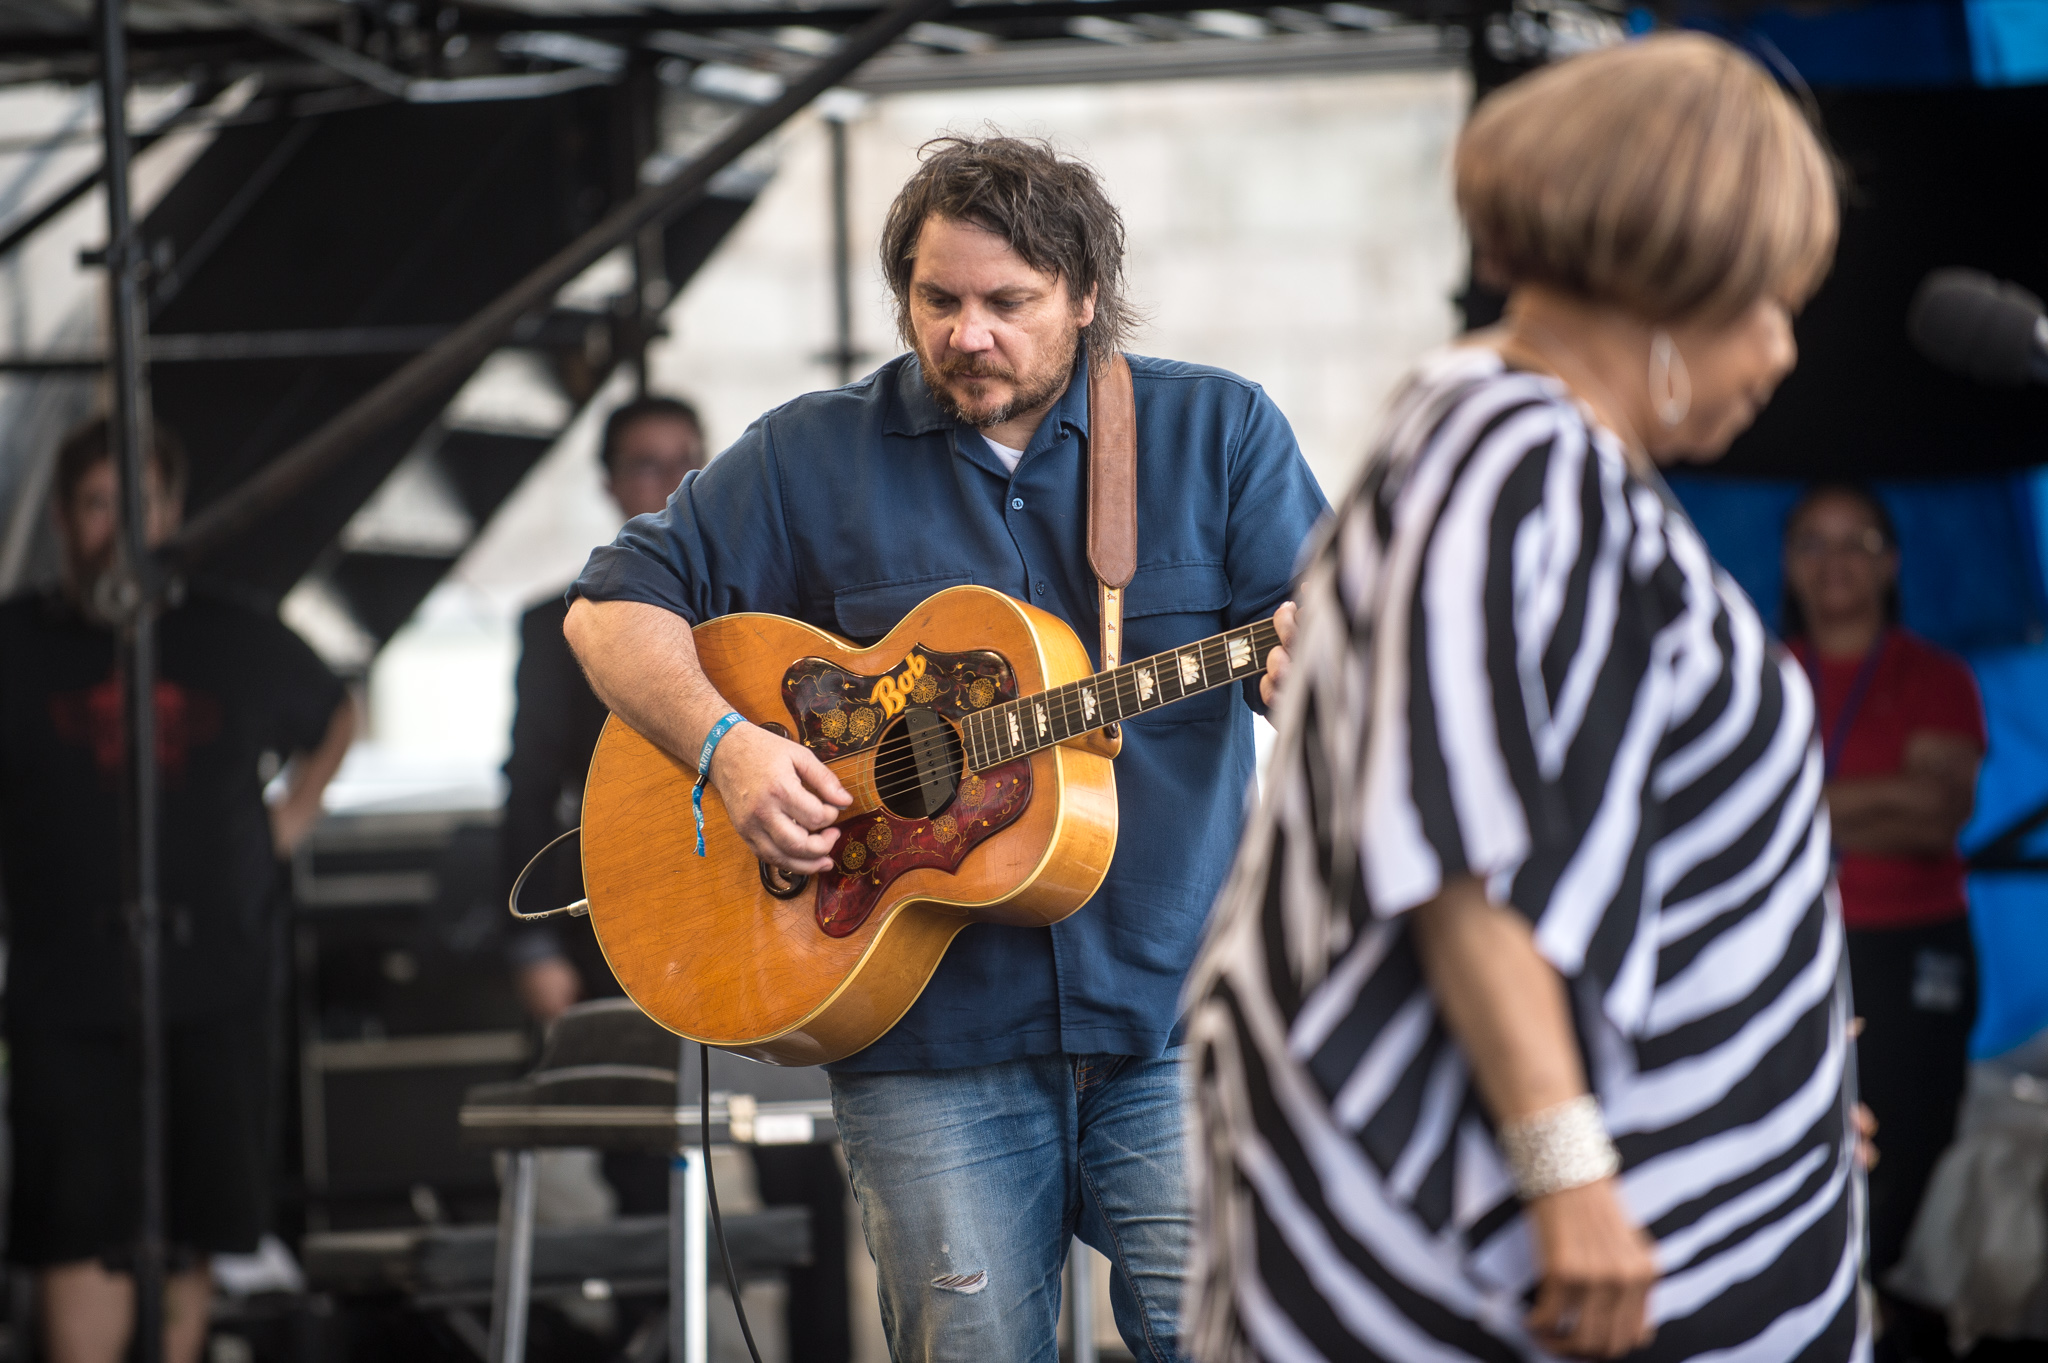 Mavis Staples was everywhere at Newport! Here she is with Jeff Tweedy.